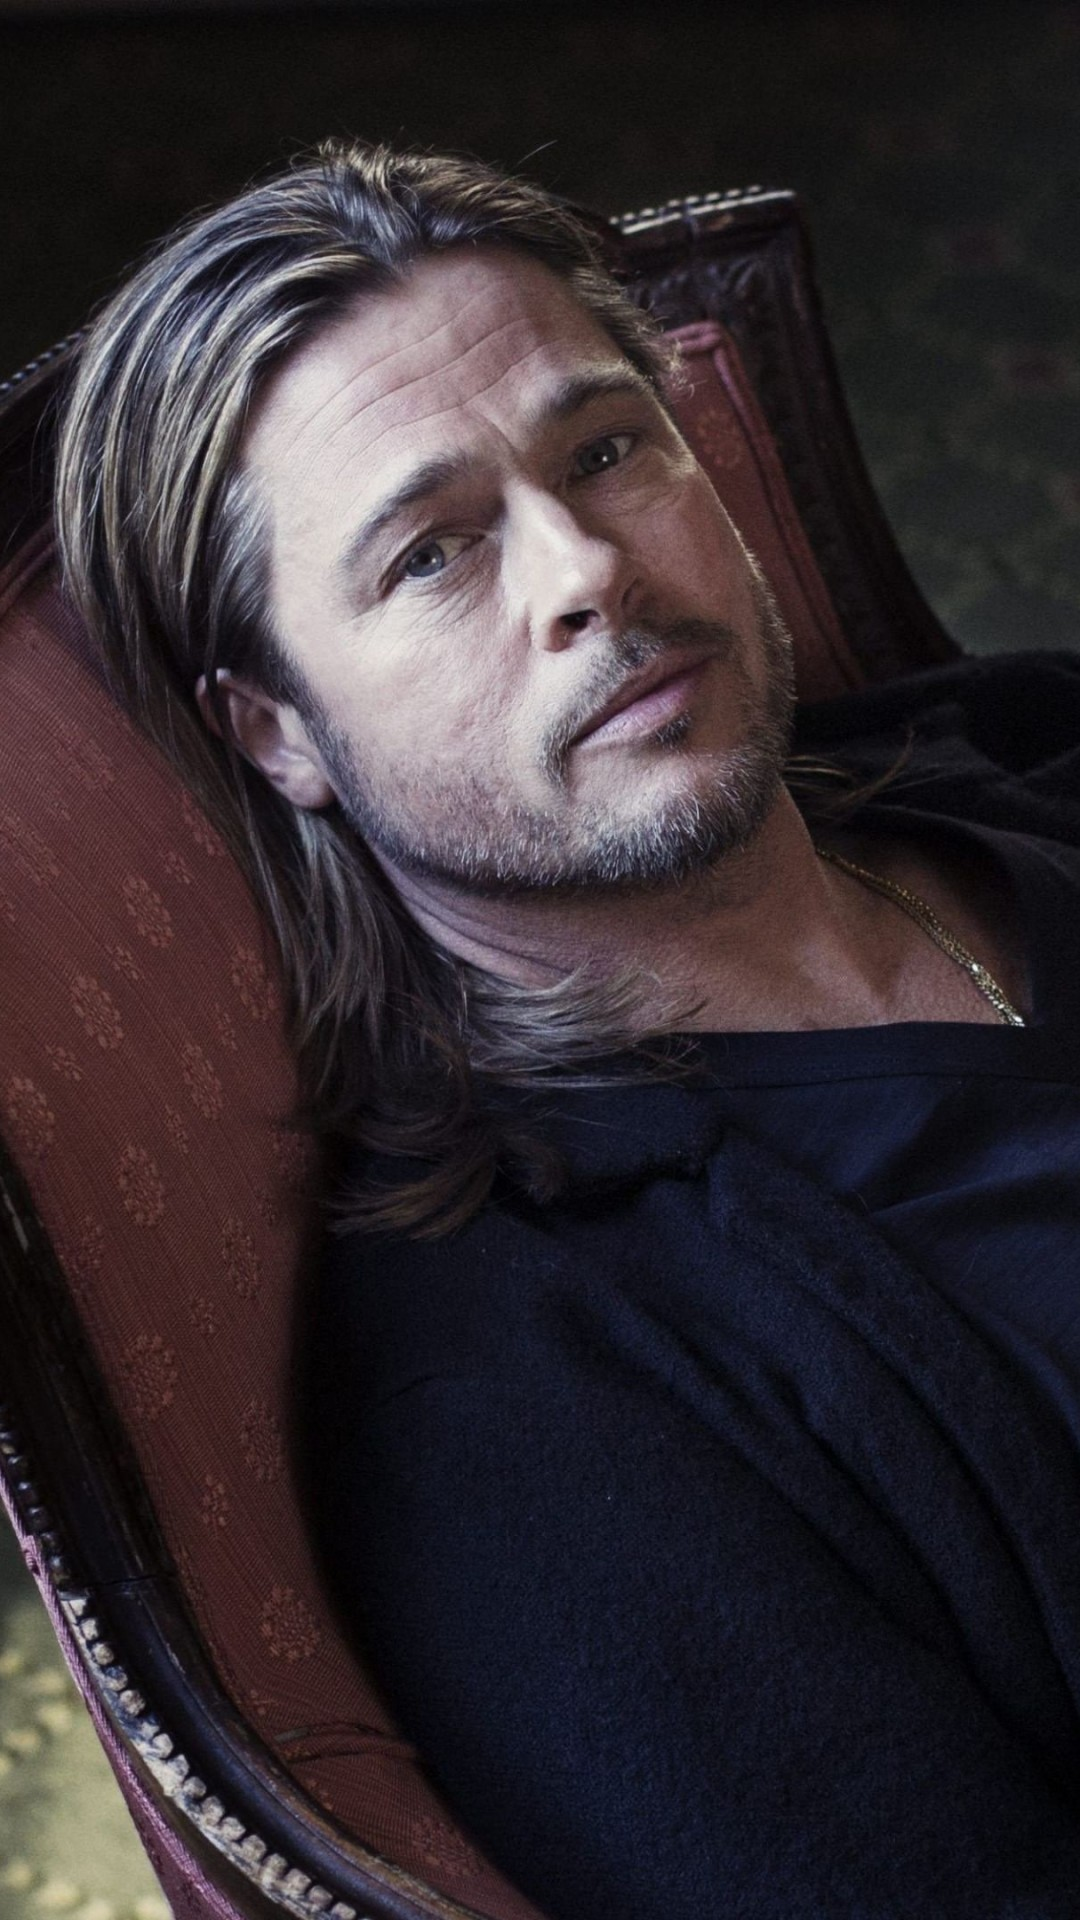 Brad Pitt Sitting On Chair Wallpaper for Google Nexus 5